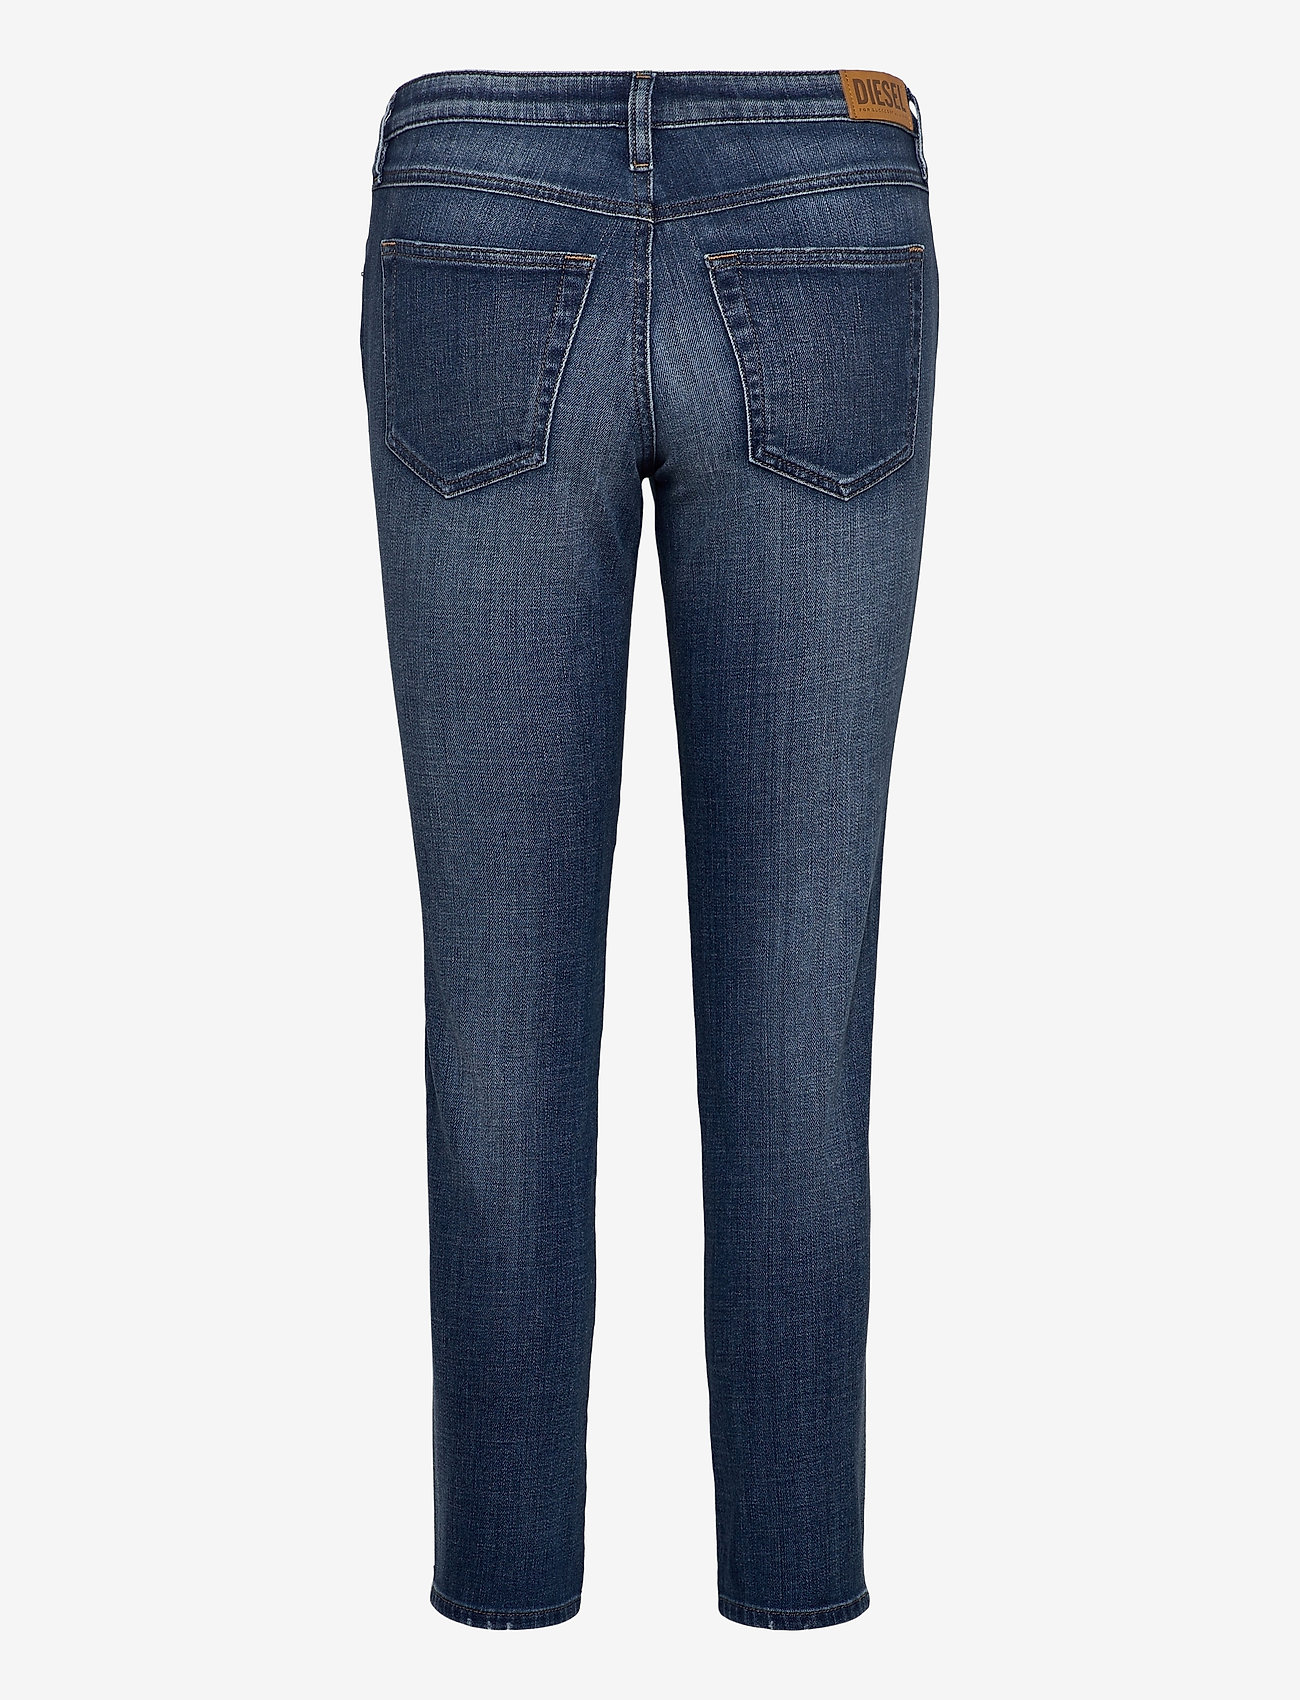 Diesel Women - BABHILA TROUSERS - slim jeans - denim - 1